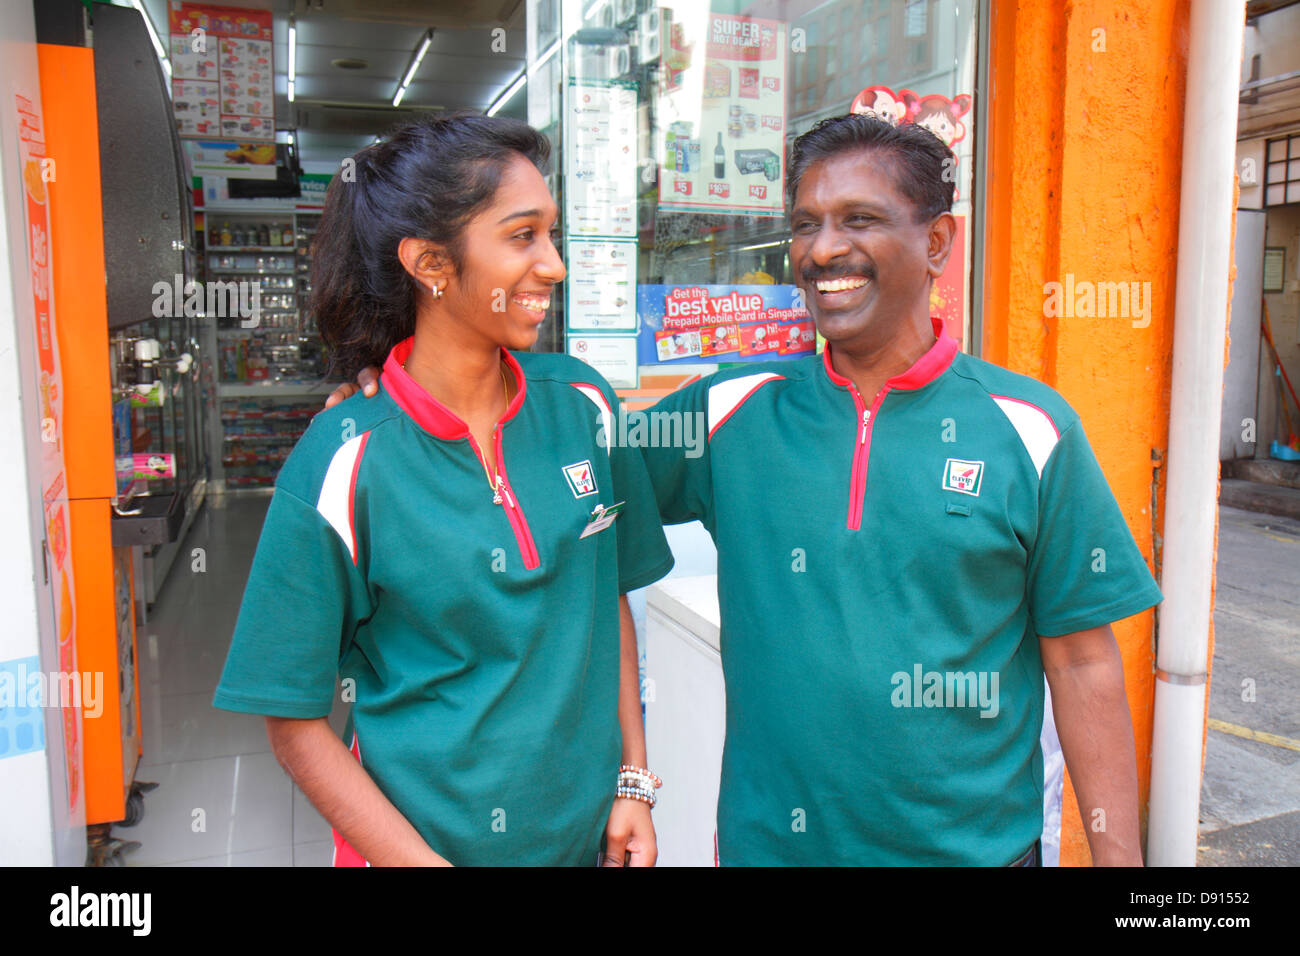 Singapour Singapour River Boat Quay Asian man père femme fille adultes 7-Eleven uniforme magasin franchisés Photo Stock